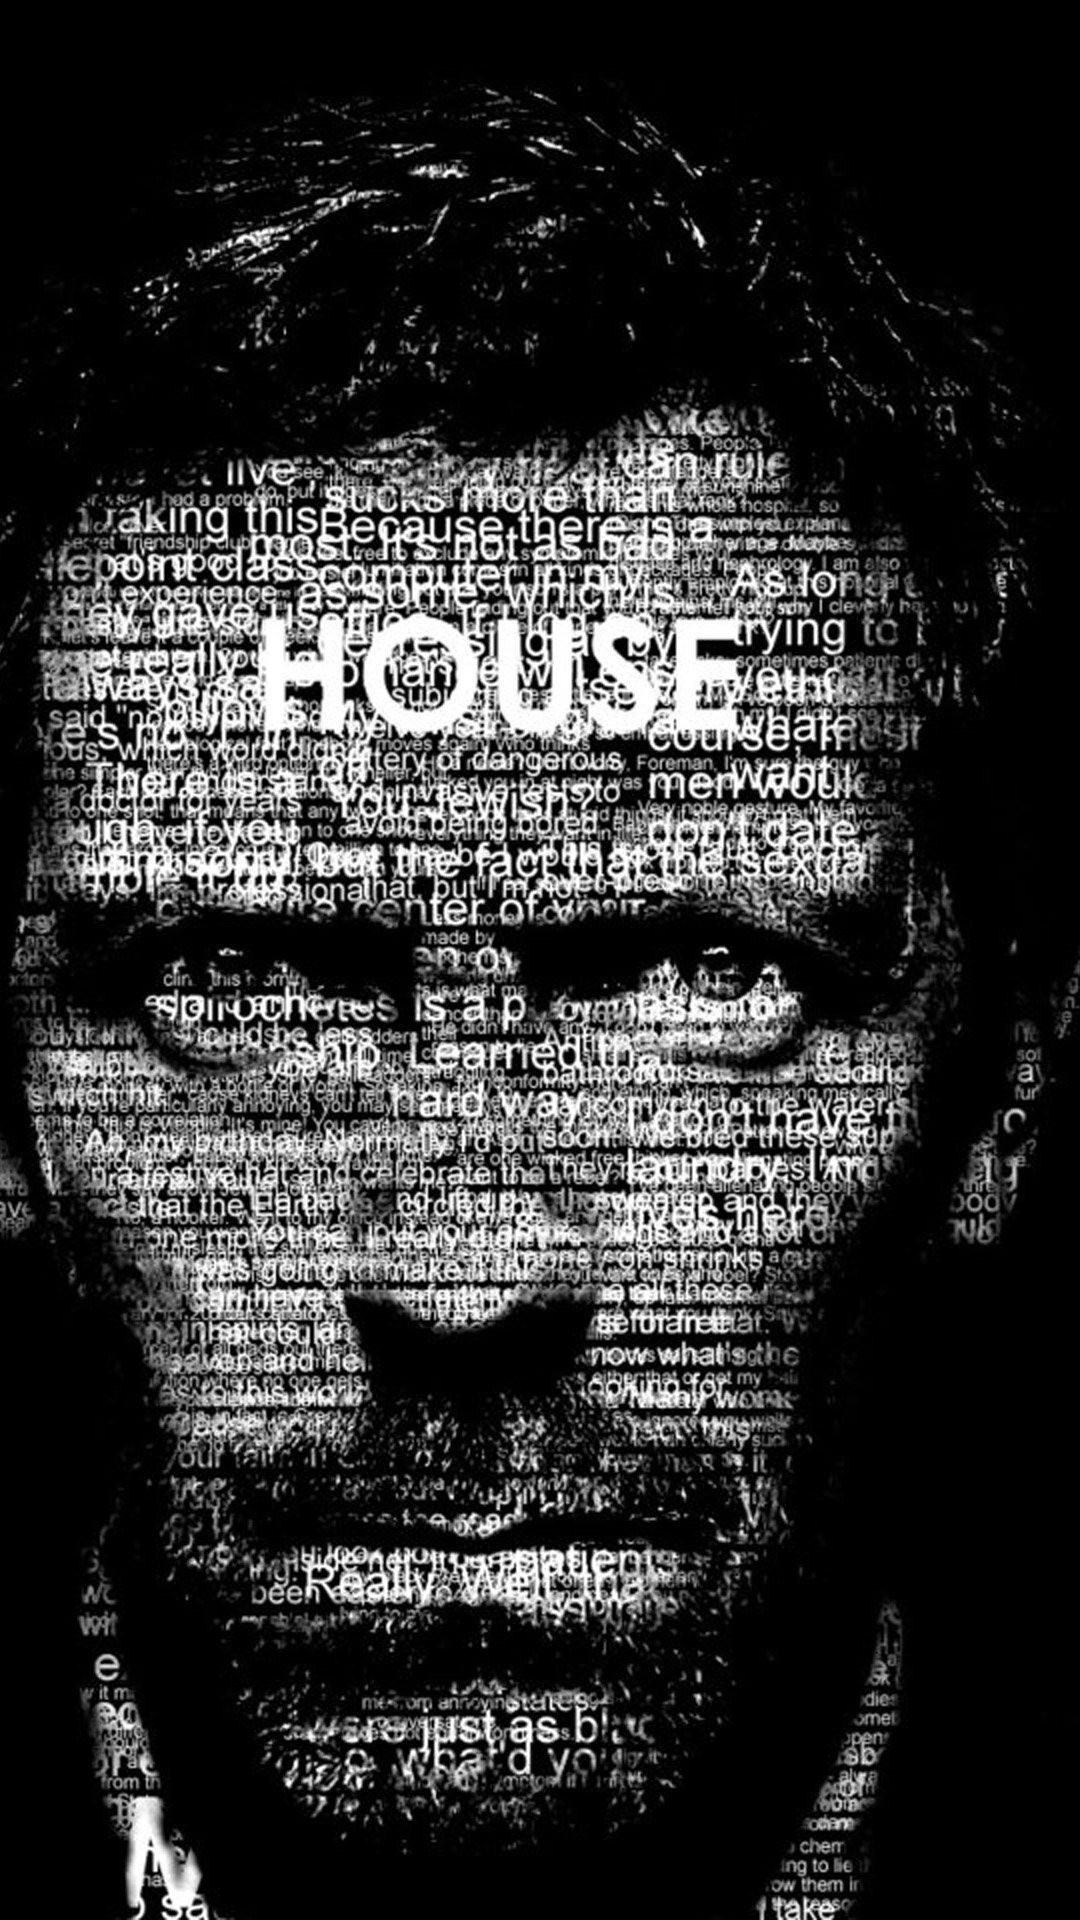 house md hd wallpapers for iphone 6 plus | wallpapers.pictures